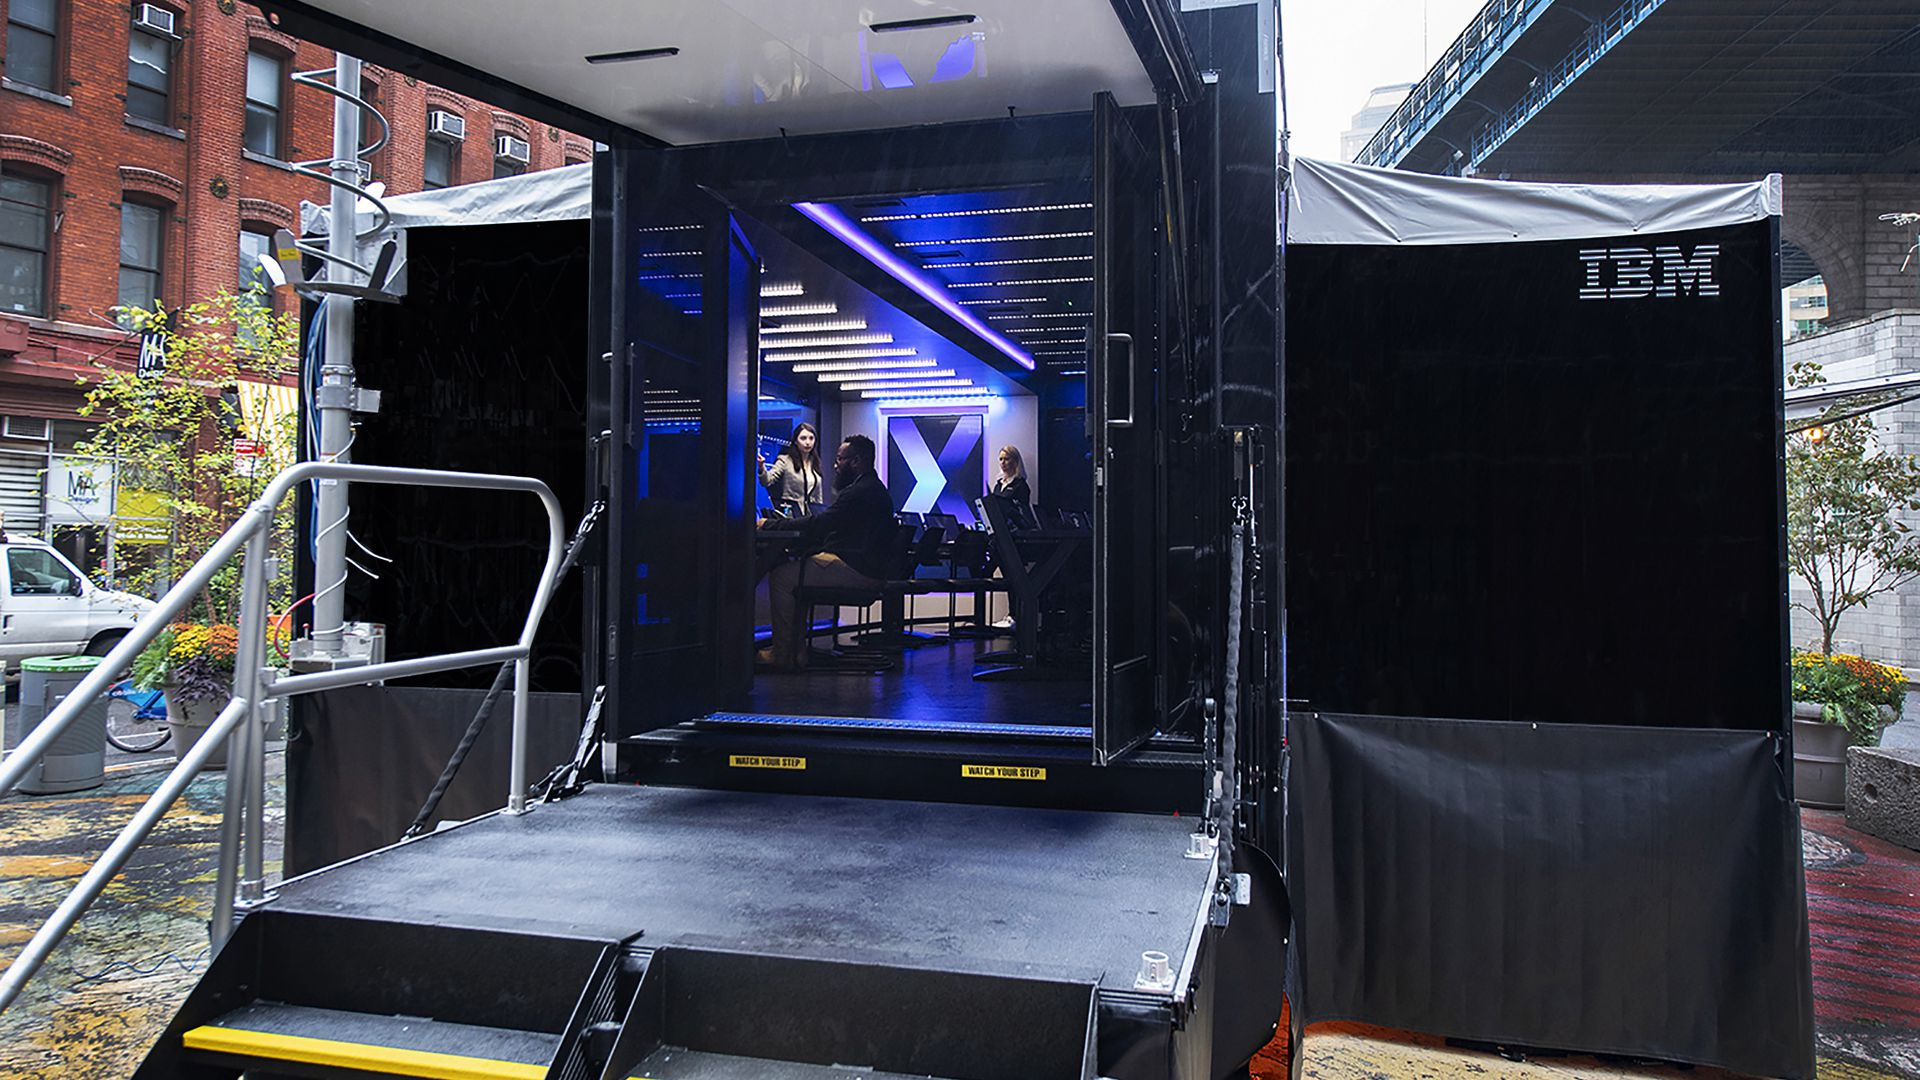 A picture of a door opening into IBM's mobile cybersecurity unit on a truck.